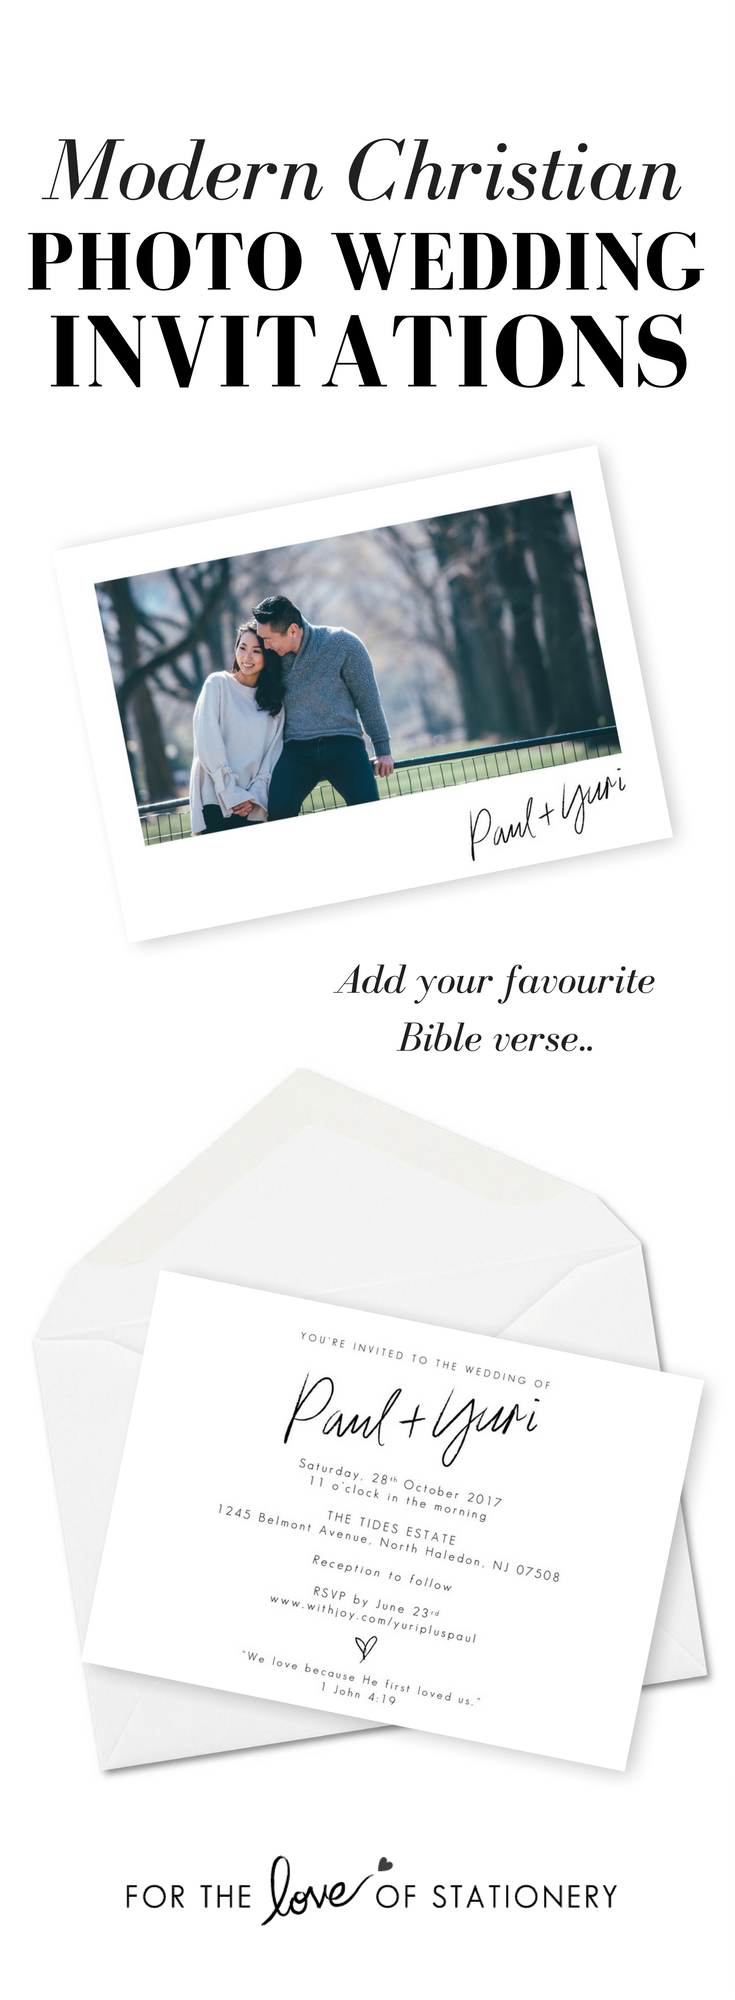 Modern Christian Wedding Invitation with Photo Wedding